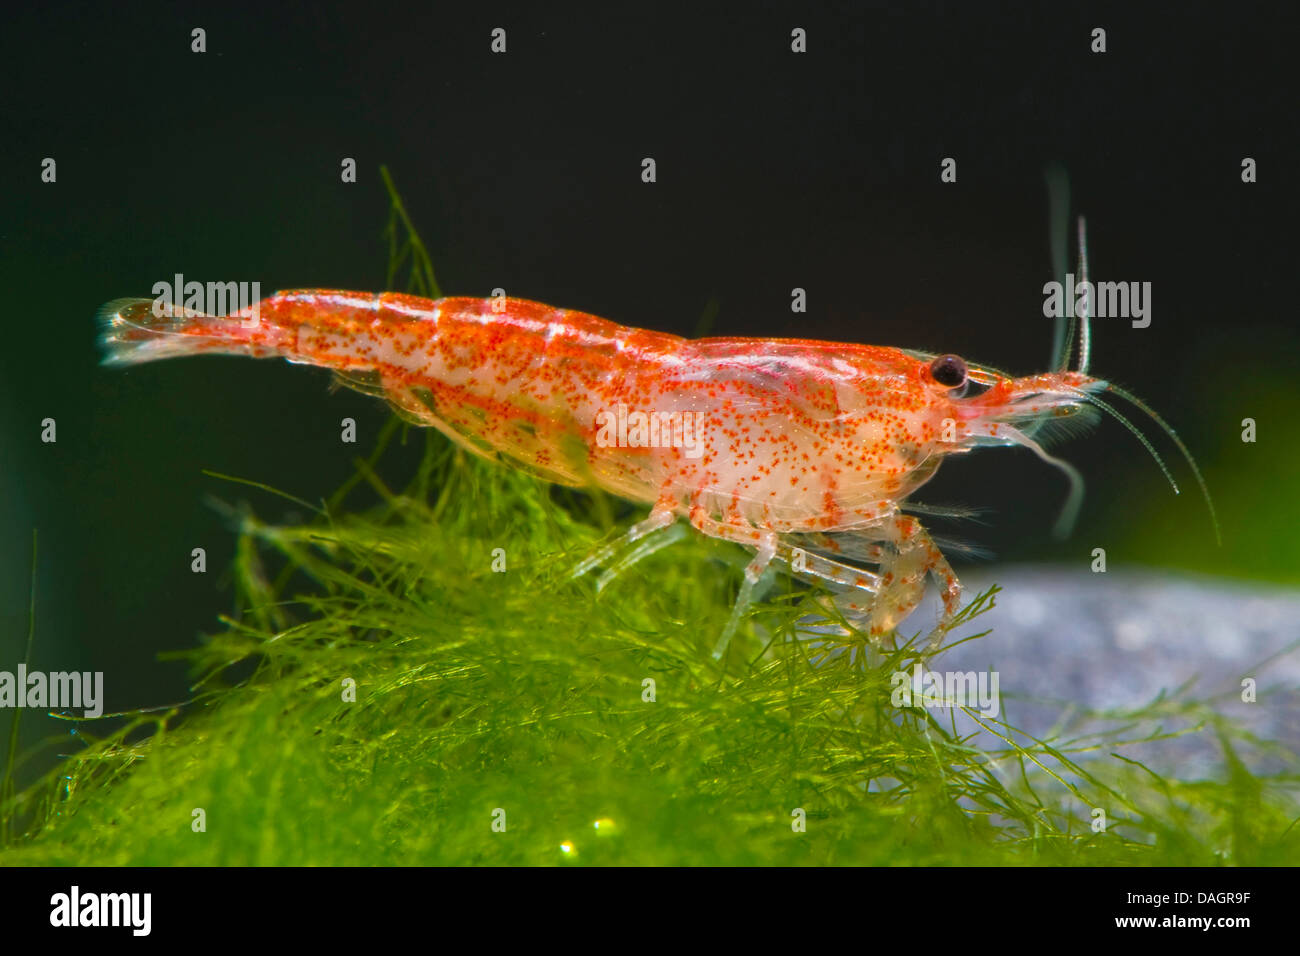 a6958b75a7 shrimp (Neocaridina Red Cherry), breed Red Cherry Stock Photo ...